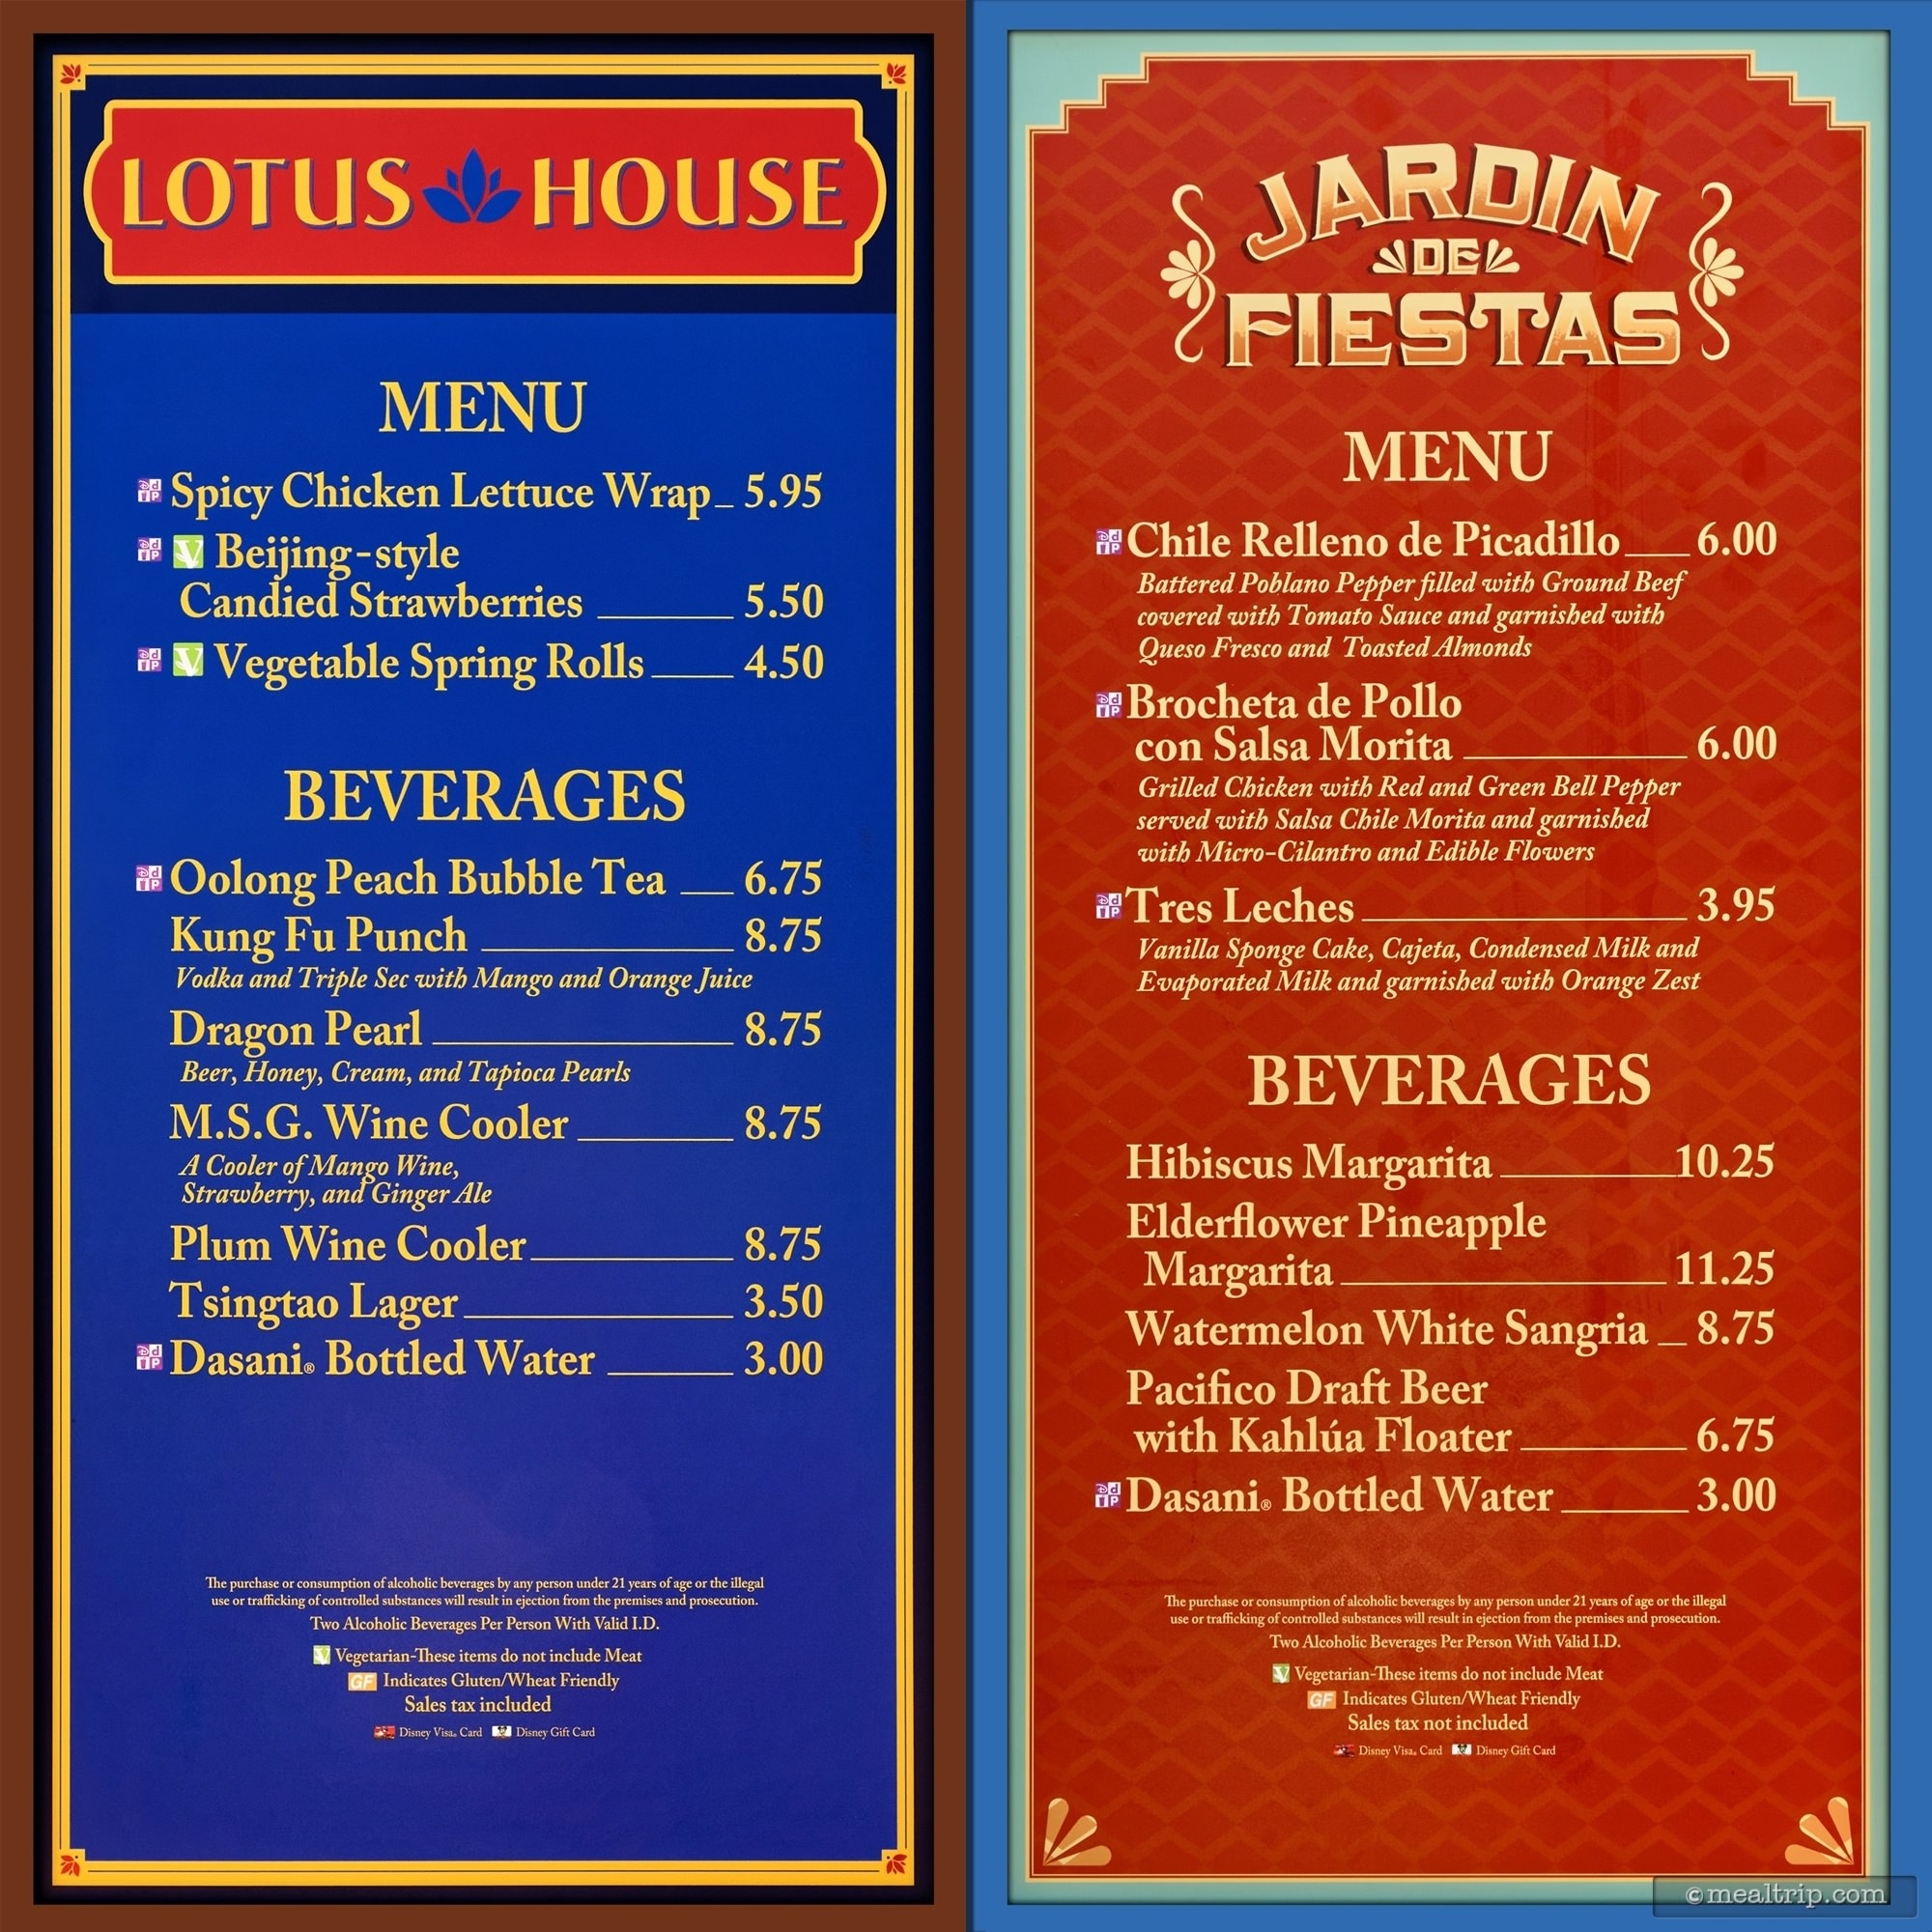 Menu Boards And Prices For 2017 Food Booths - Epcot Flower & Garden within Epcot Flower And Garden Festival Food Prices